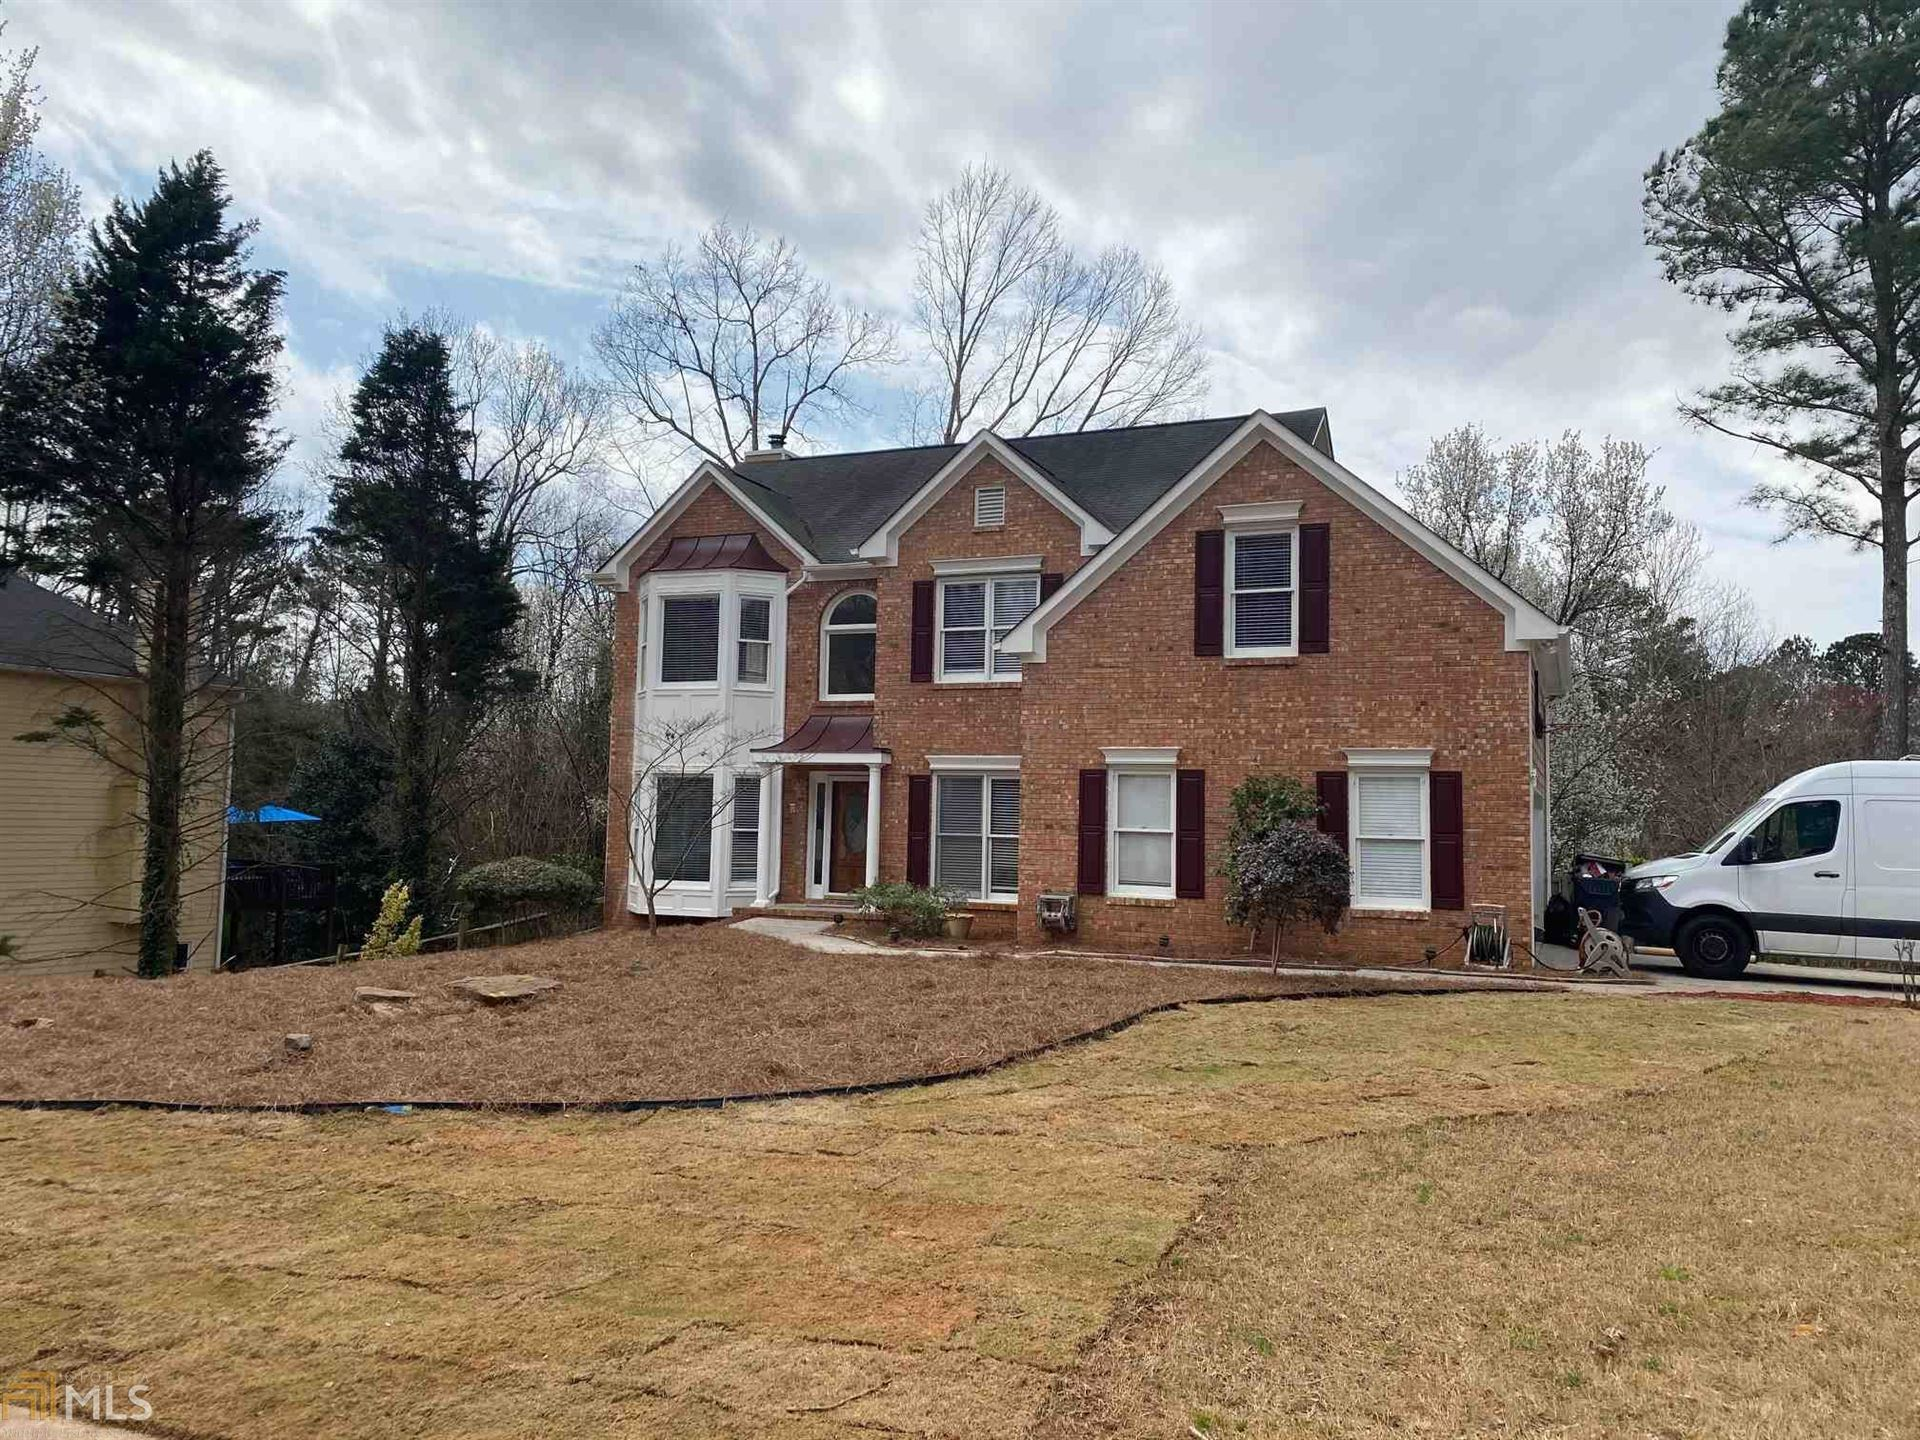 960 Whitfield Ct, Lawrenceville, GA 30043 - #: 8946432